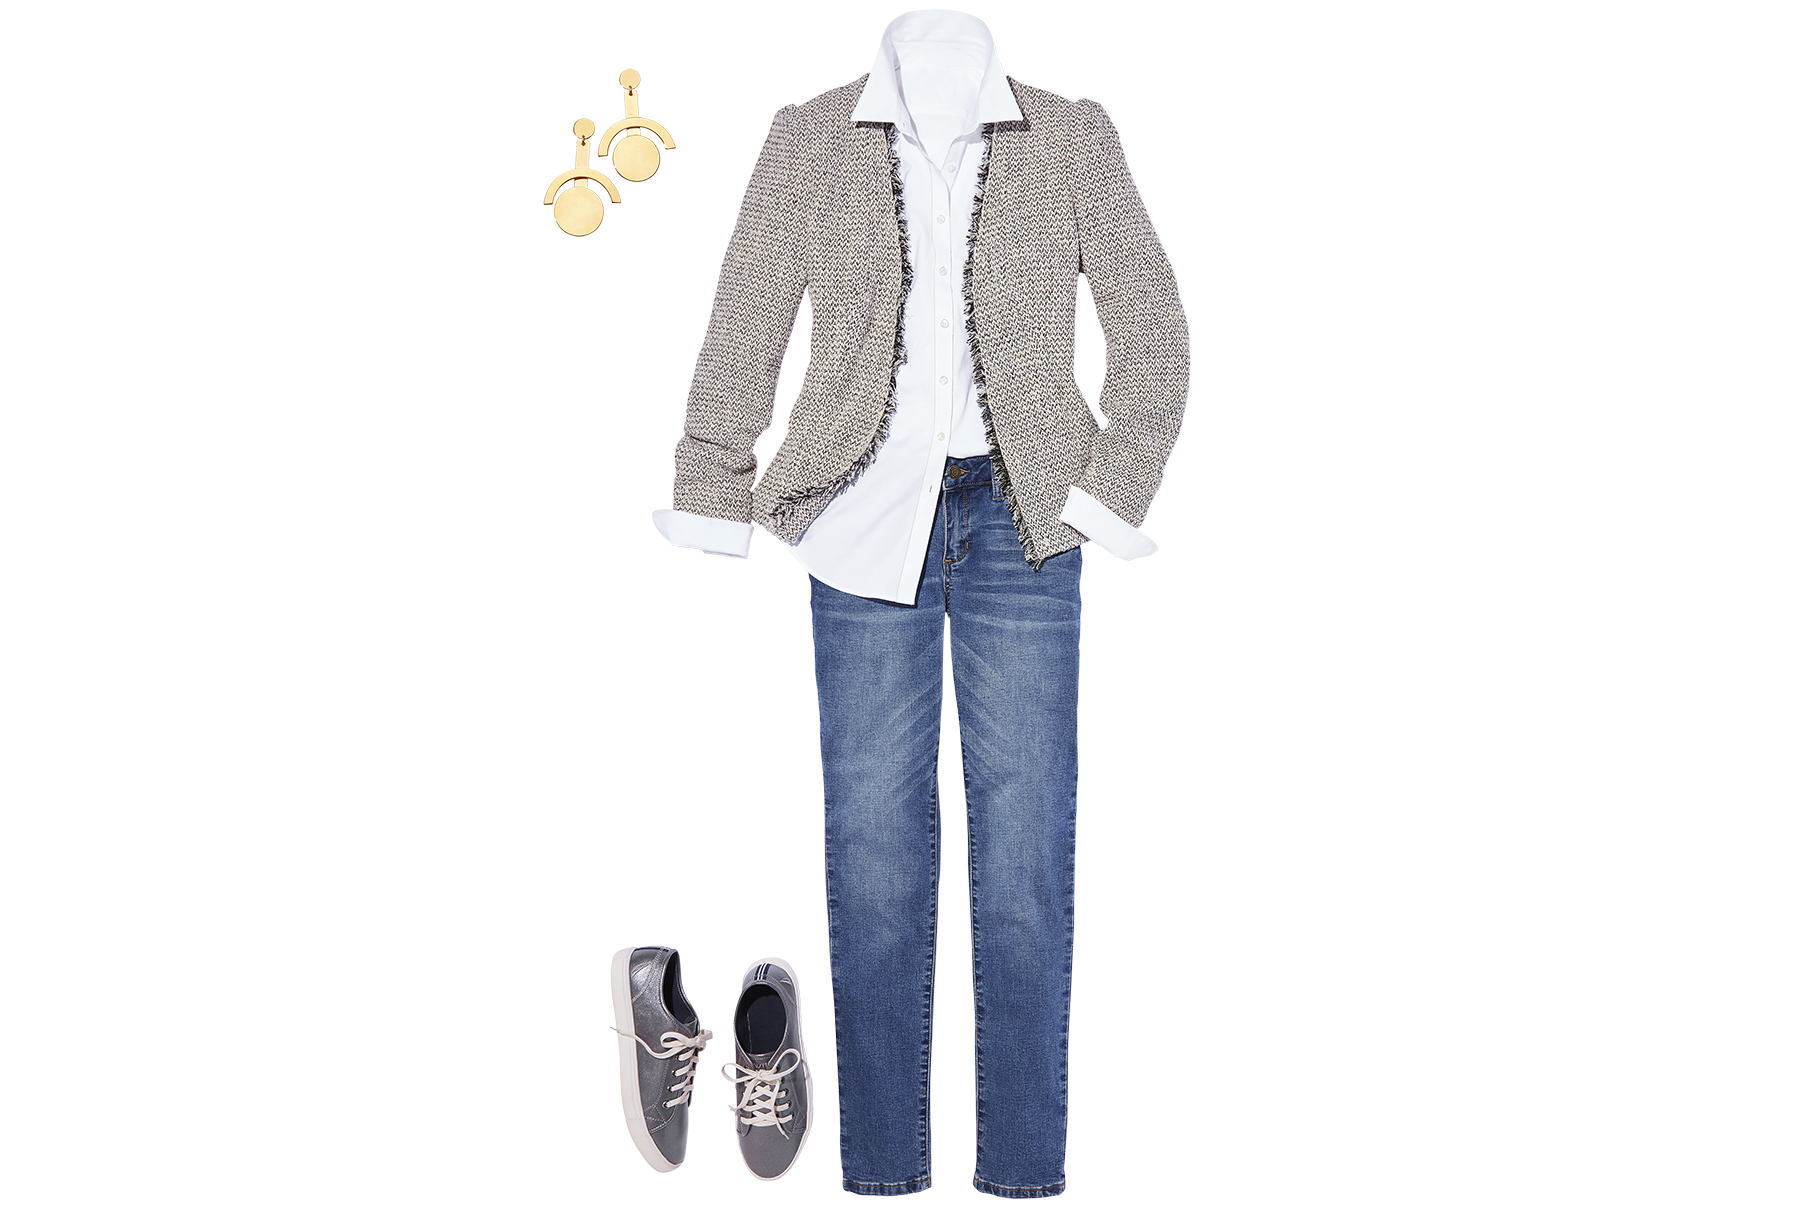 White shirt paired with sneakers, jeans, gold earrings